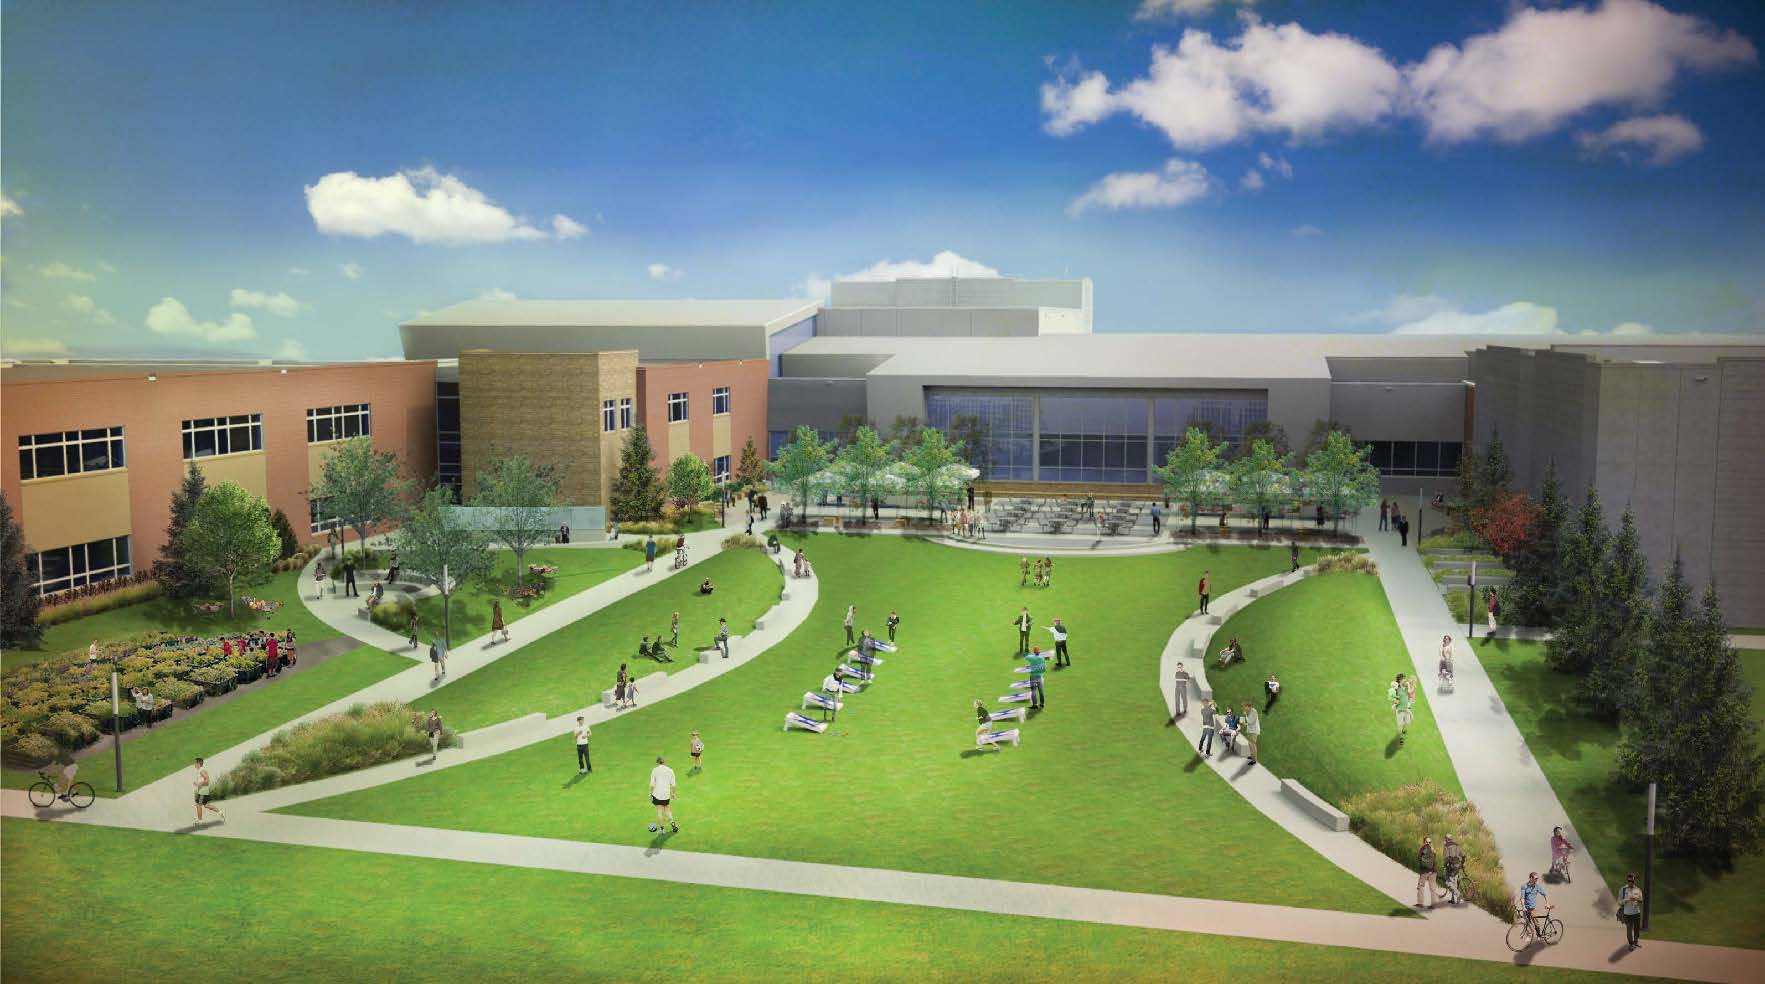 rendering of a high school courtyard